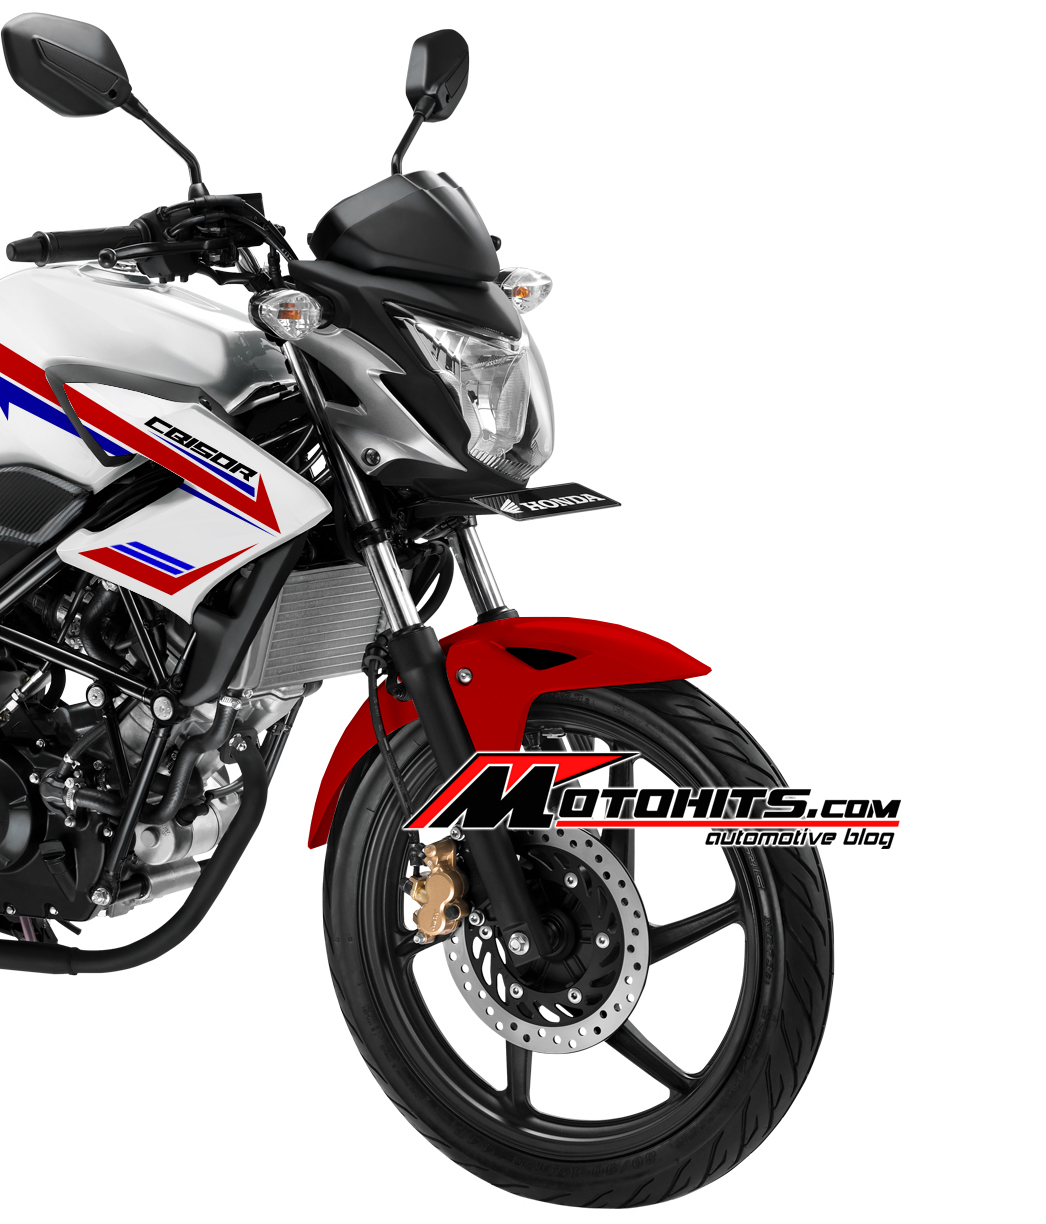 Honda CB150R 2015 Refreshment Color Bro Motohitscom